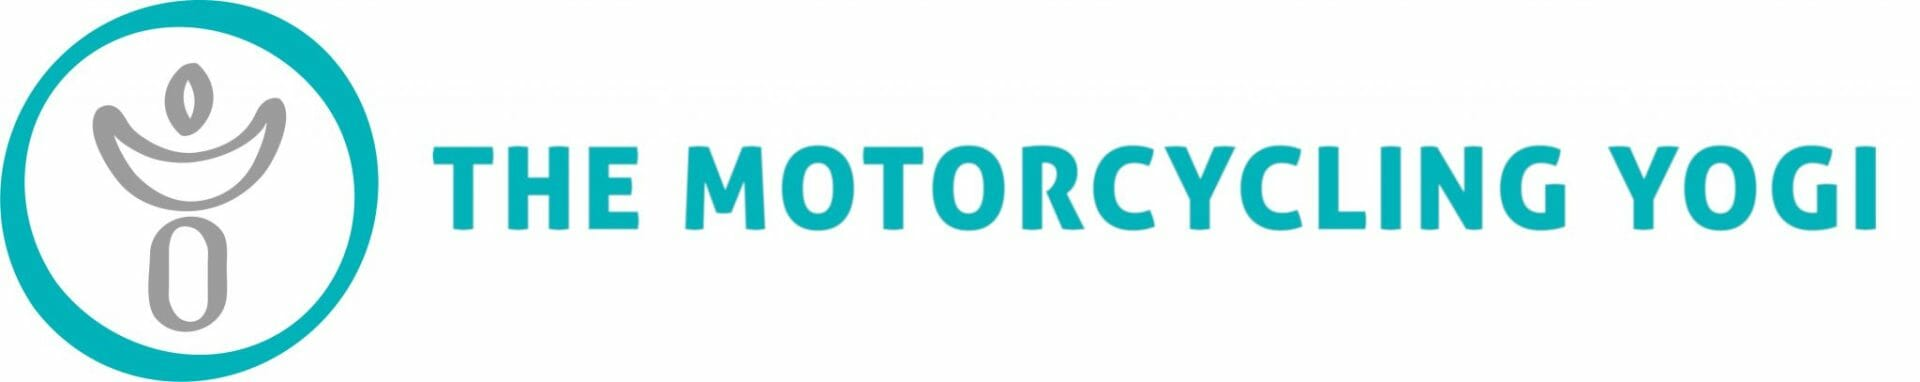 logo-motocycling-yogi-sticky